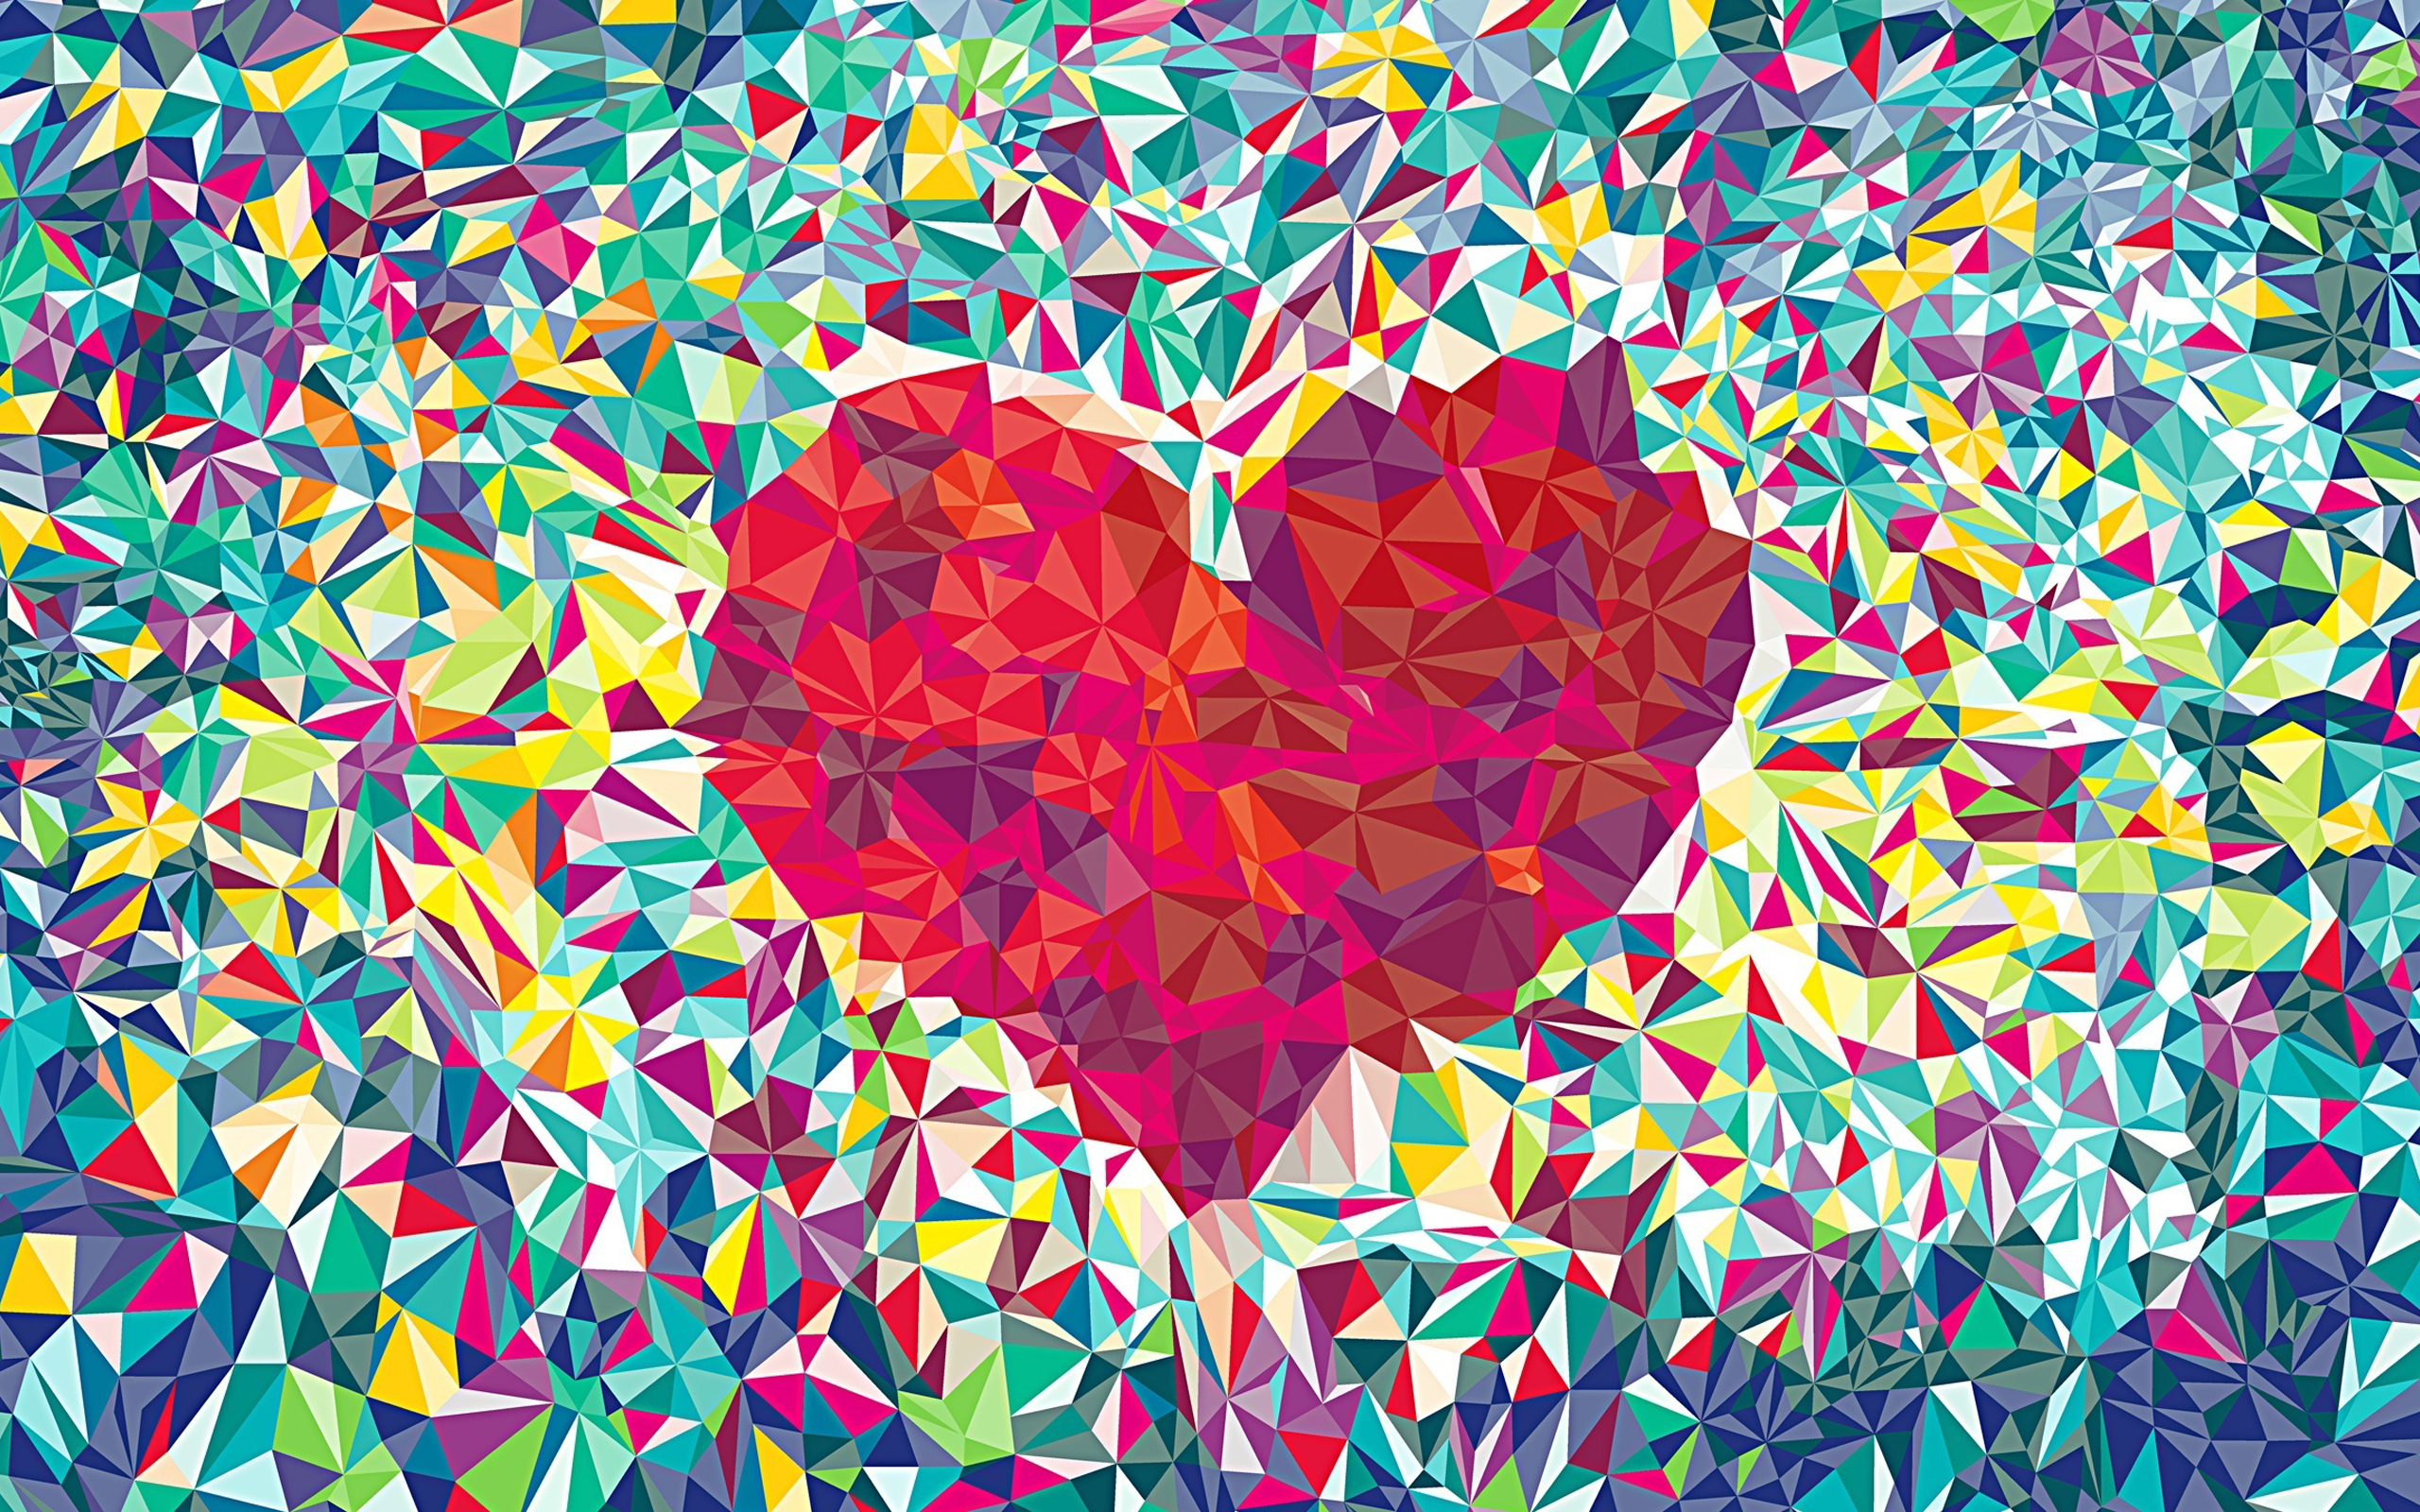 Geometric Heart Abstract Wallpapers 248.87 Kb